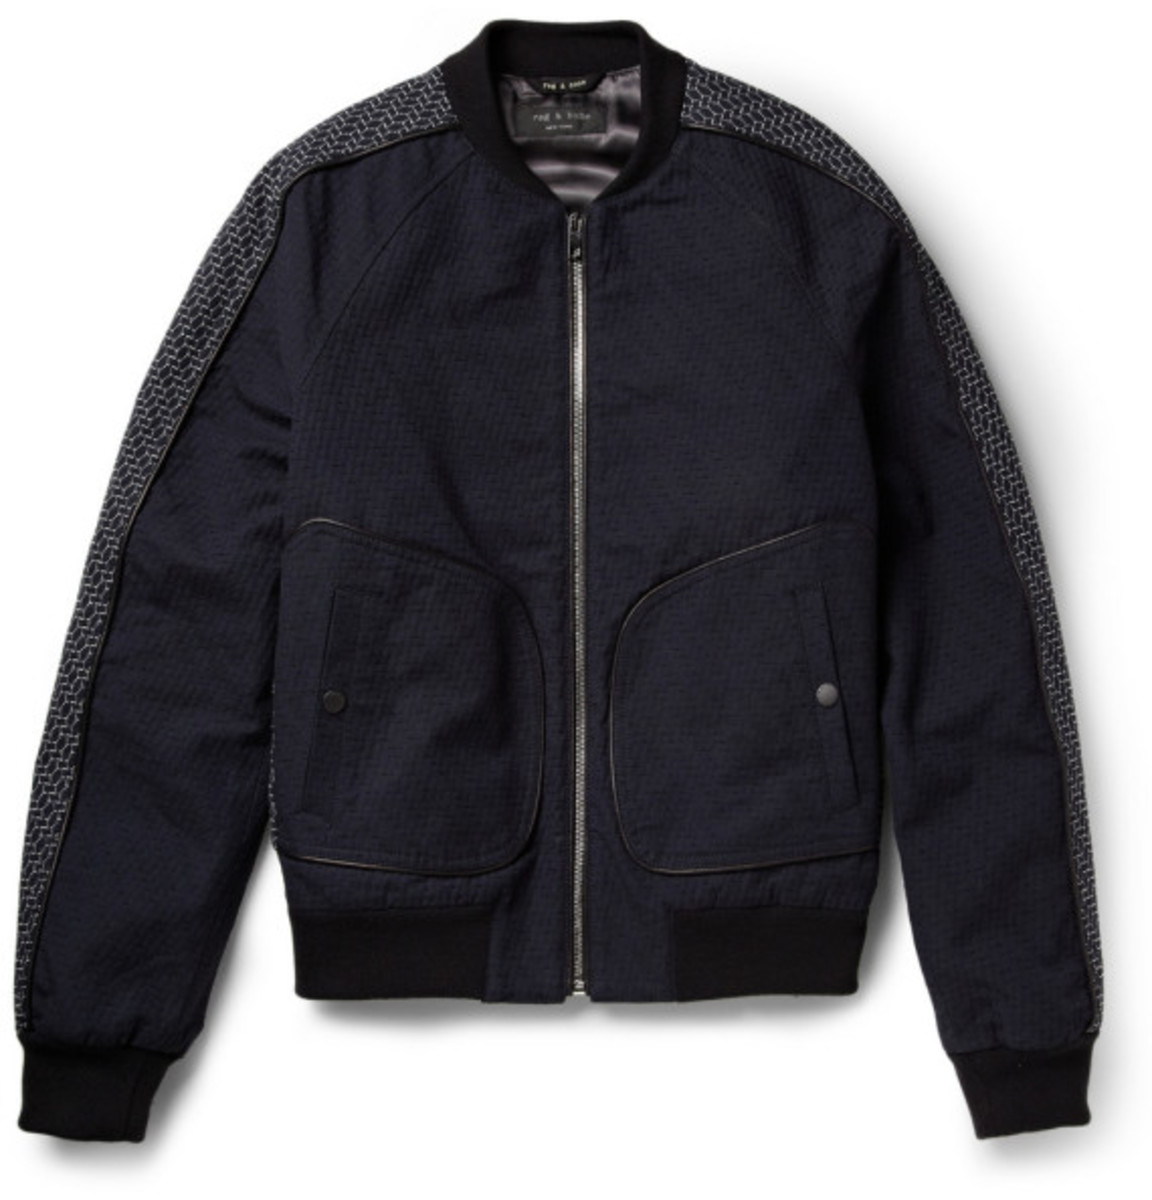 Spring 2014 Trends - Top 10 Bomber Jackets Available Now - 13